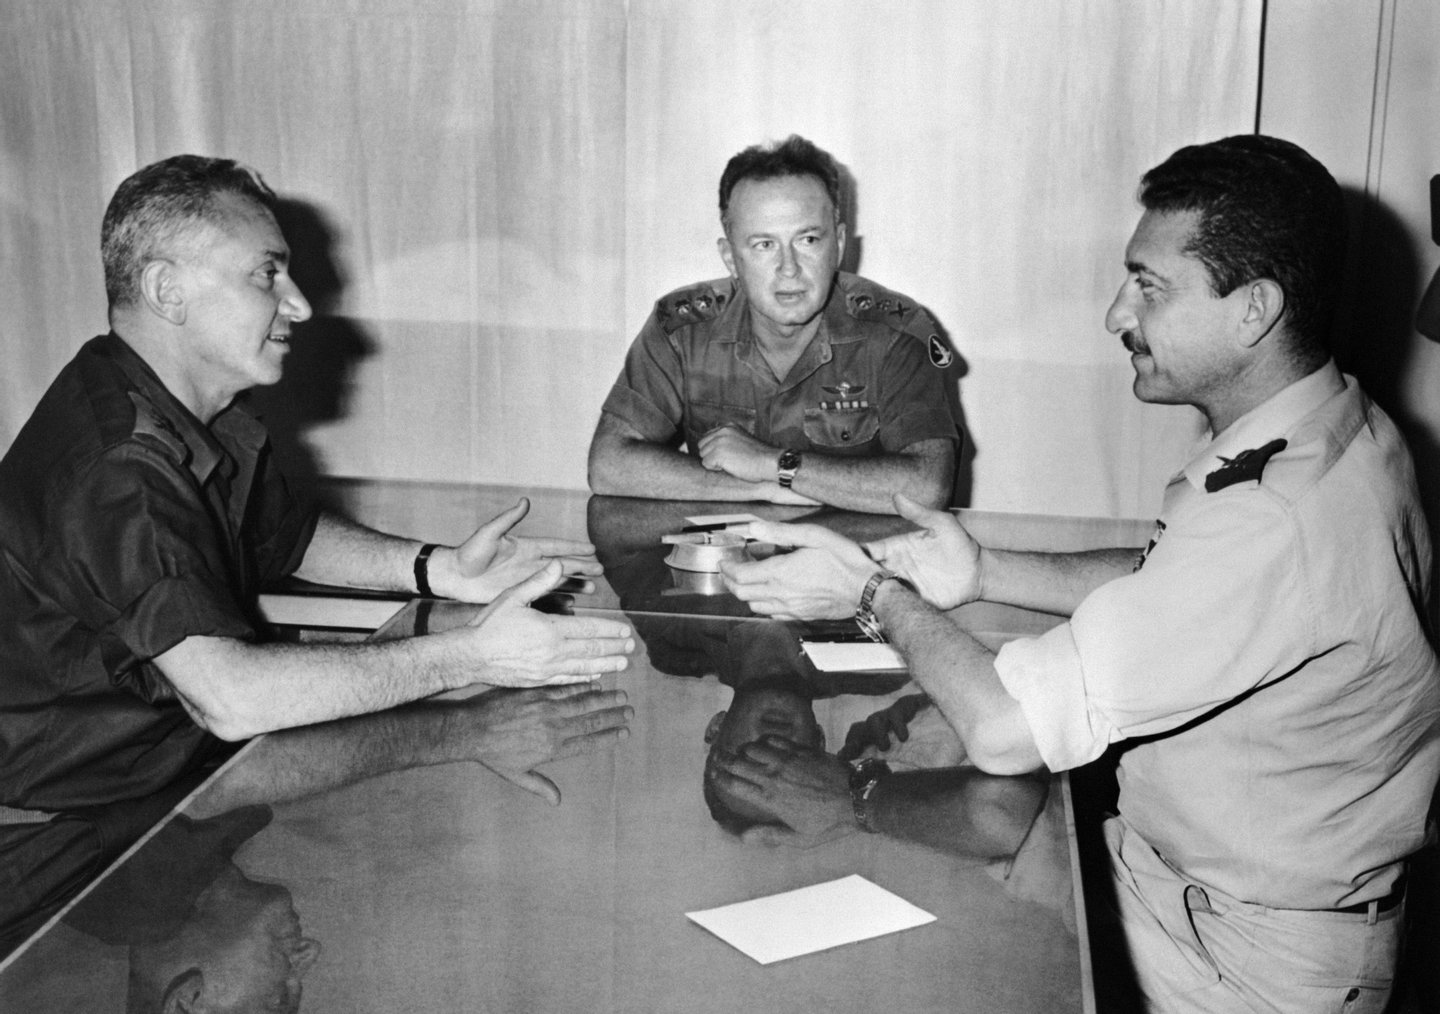 """(from L to R) Israeli Deputy Chief of Staff in the the Israel Defense Forces (IDF) Haim """"Kidoni"""" Bar-Lev, General and chief of staff of the IDF Yitzhak Rabin and General and IDF's Deputy Chief of Staff Ezer Weitzmann talk on June 6, 1967 about the military operation during the Six-Day War. AFP PHOTO (Photo credit should read DERZI/AFP/Getty Images)"""